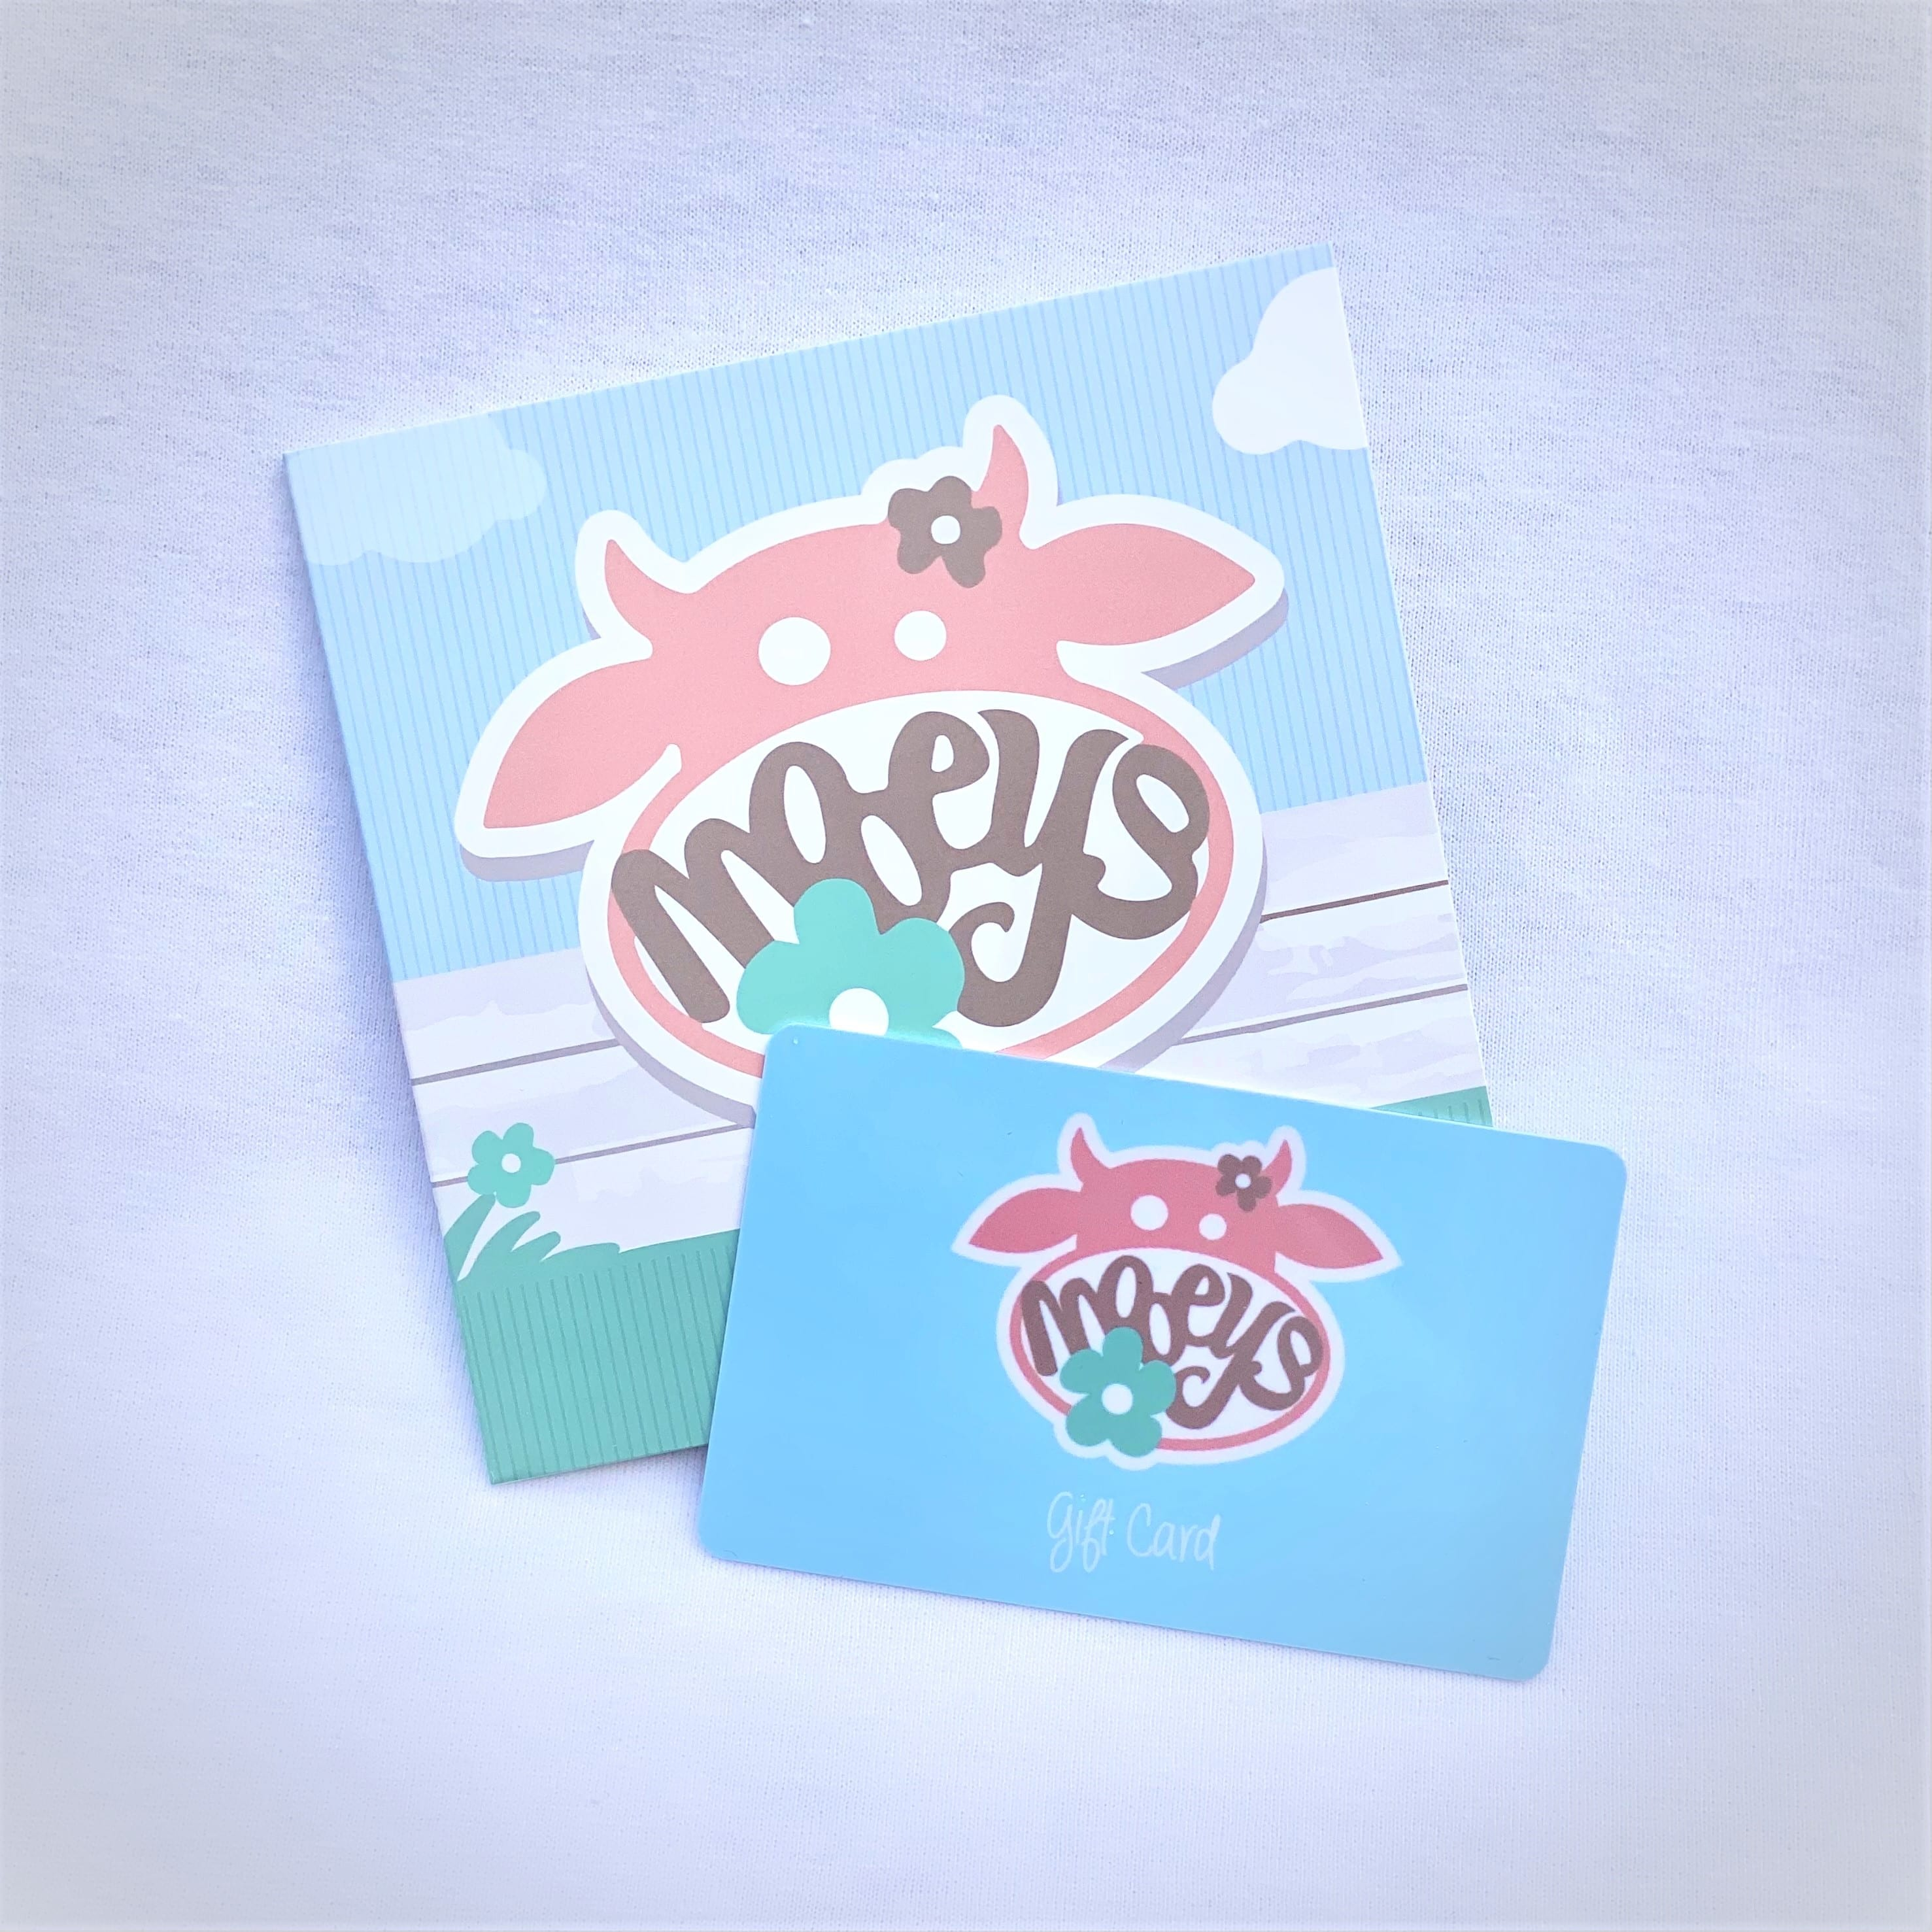 Mooeys Gift Card | The Perfect Present